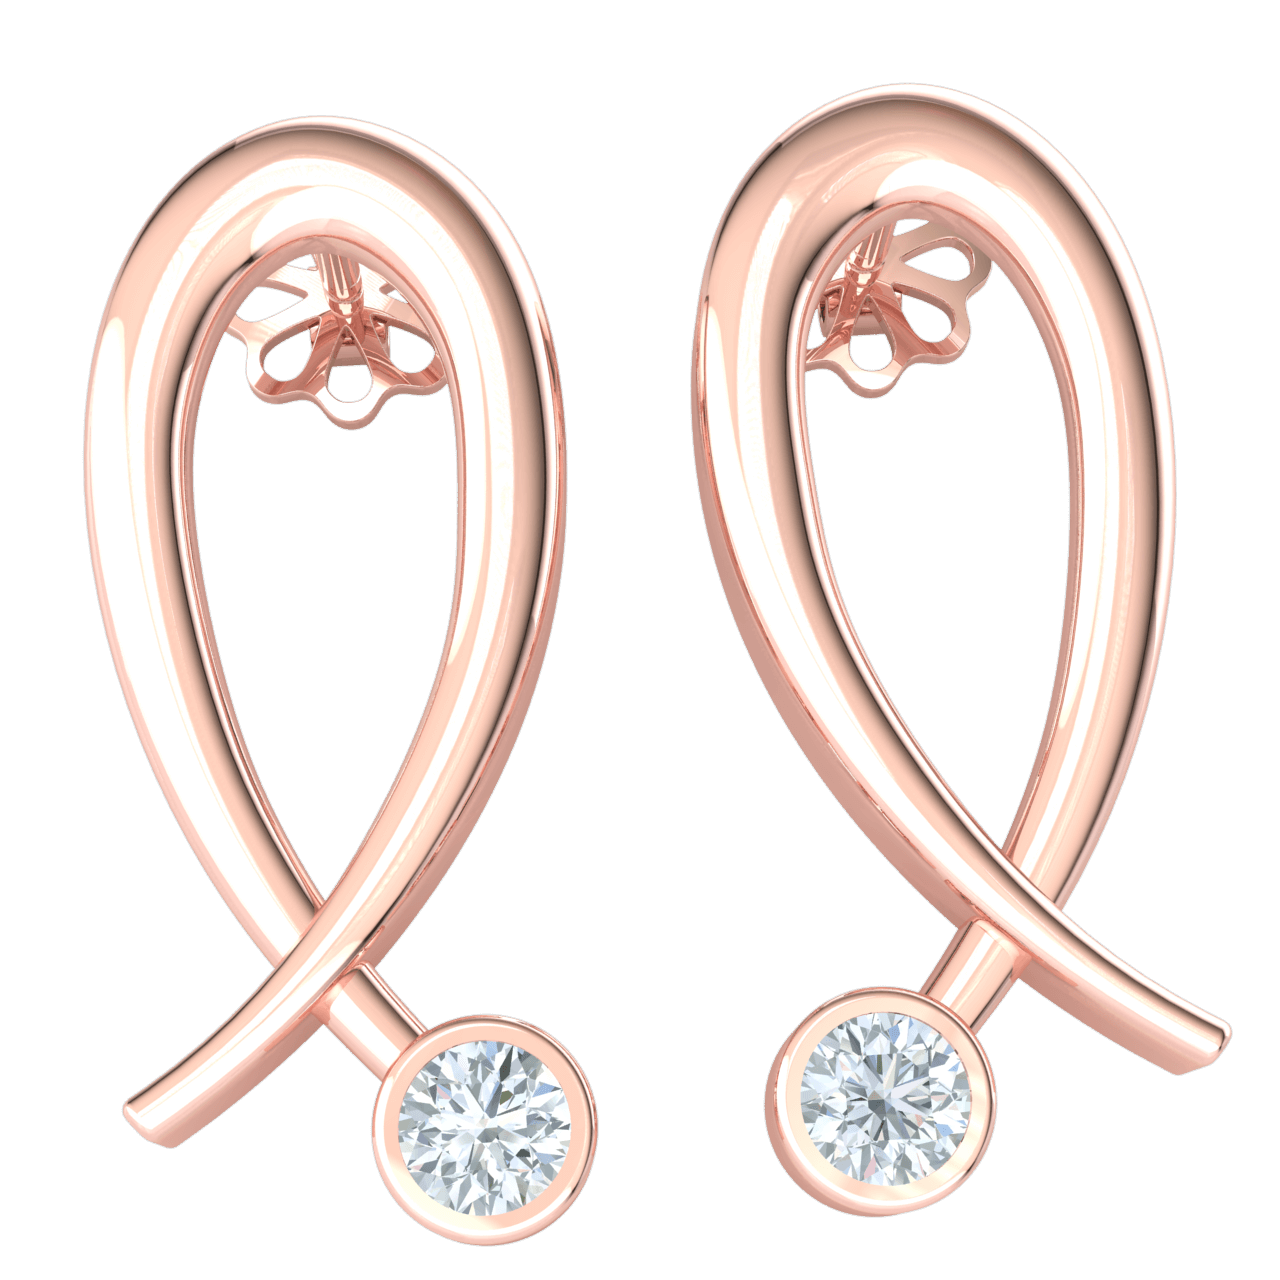 Beautiful Real Breast Cancer Awareness Symbol Earrings With Sparkling White Diamond 0.13 Ct GH I1-I2 and 10 kt Gold